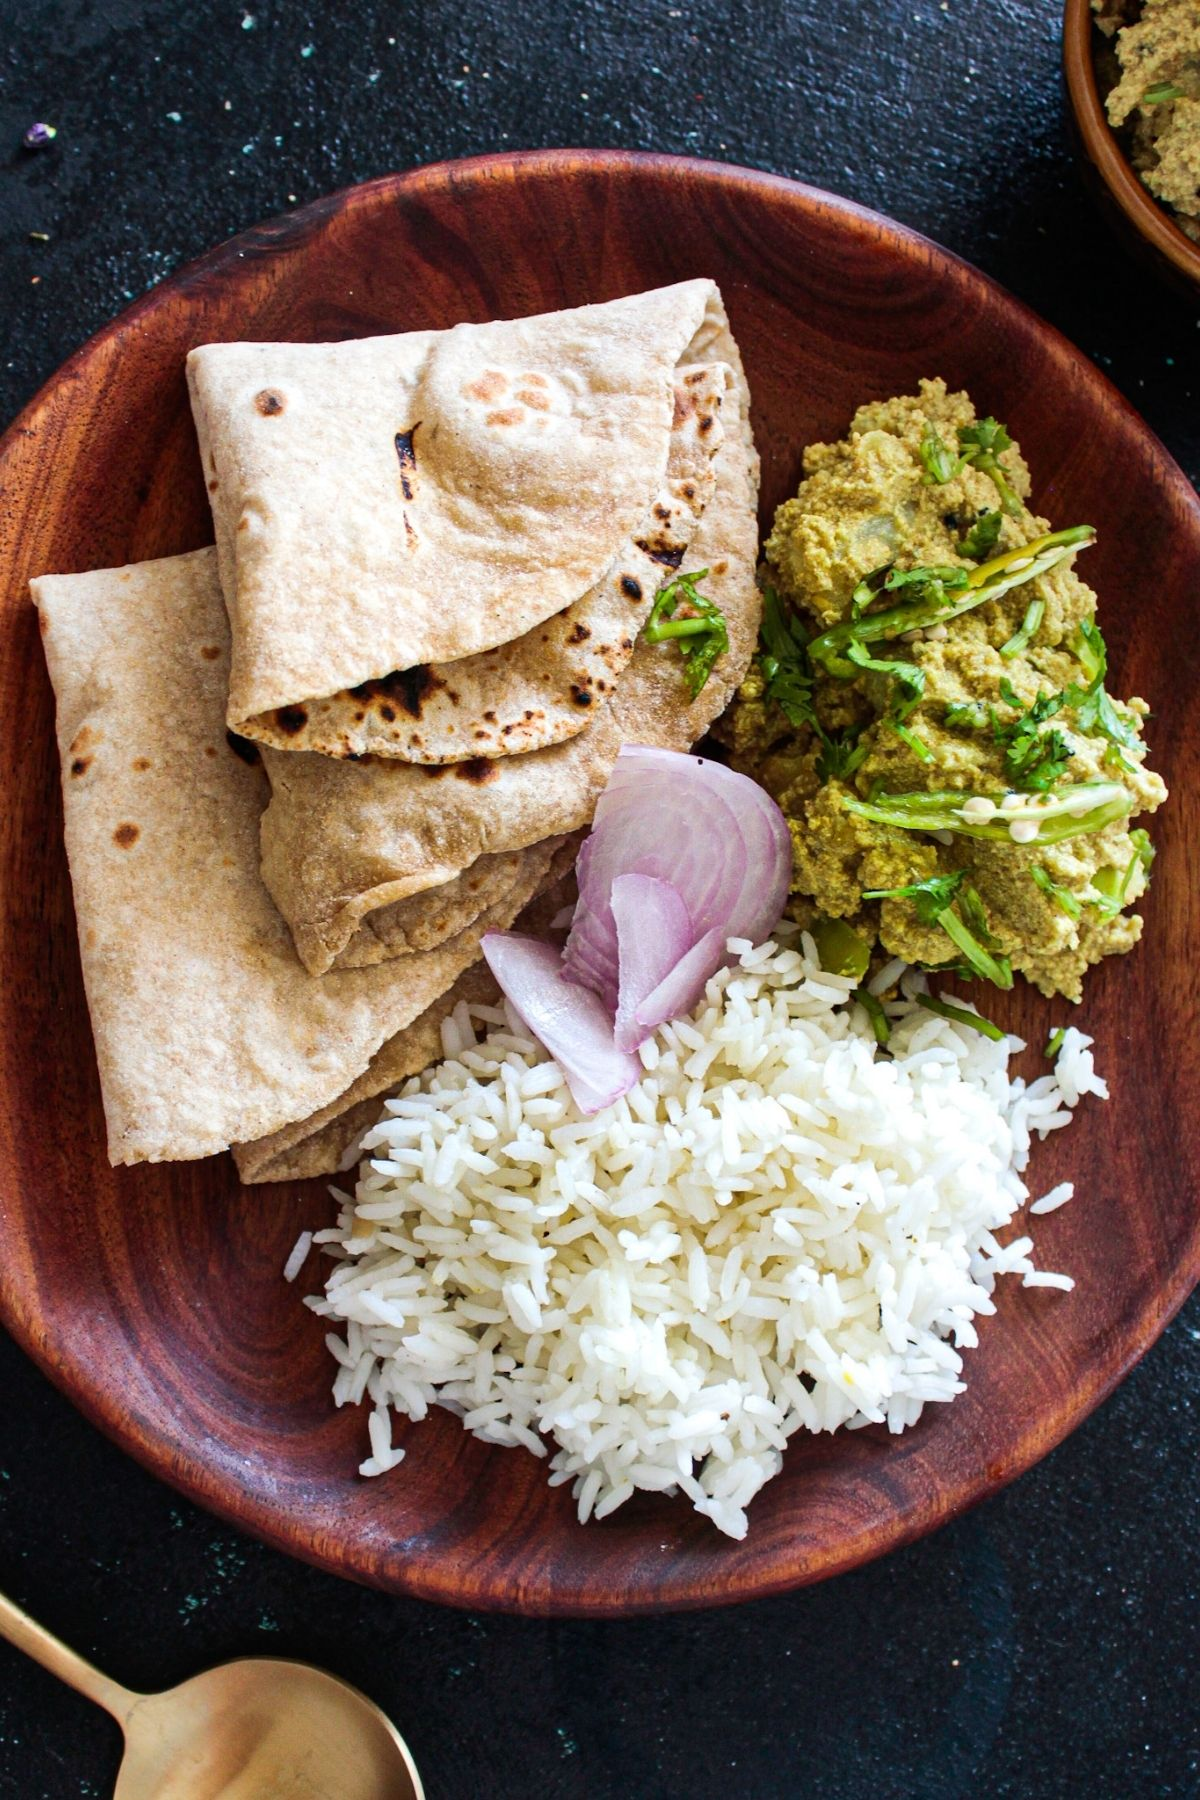 Overhead image of brown plate with rice onion roti and green curry